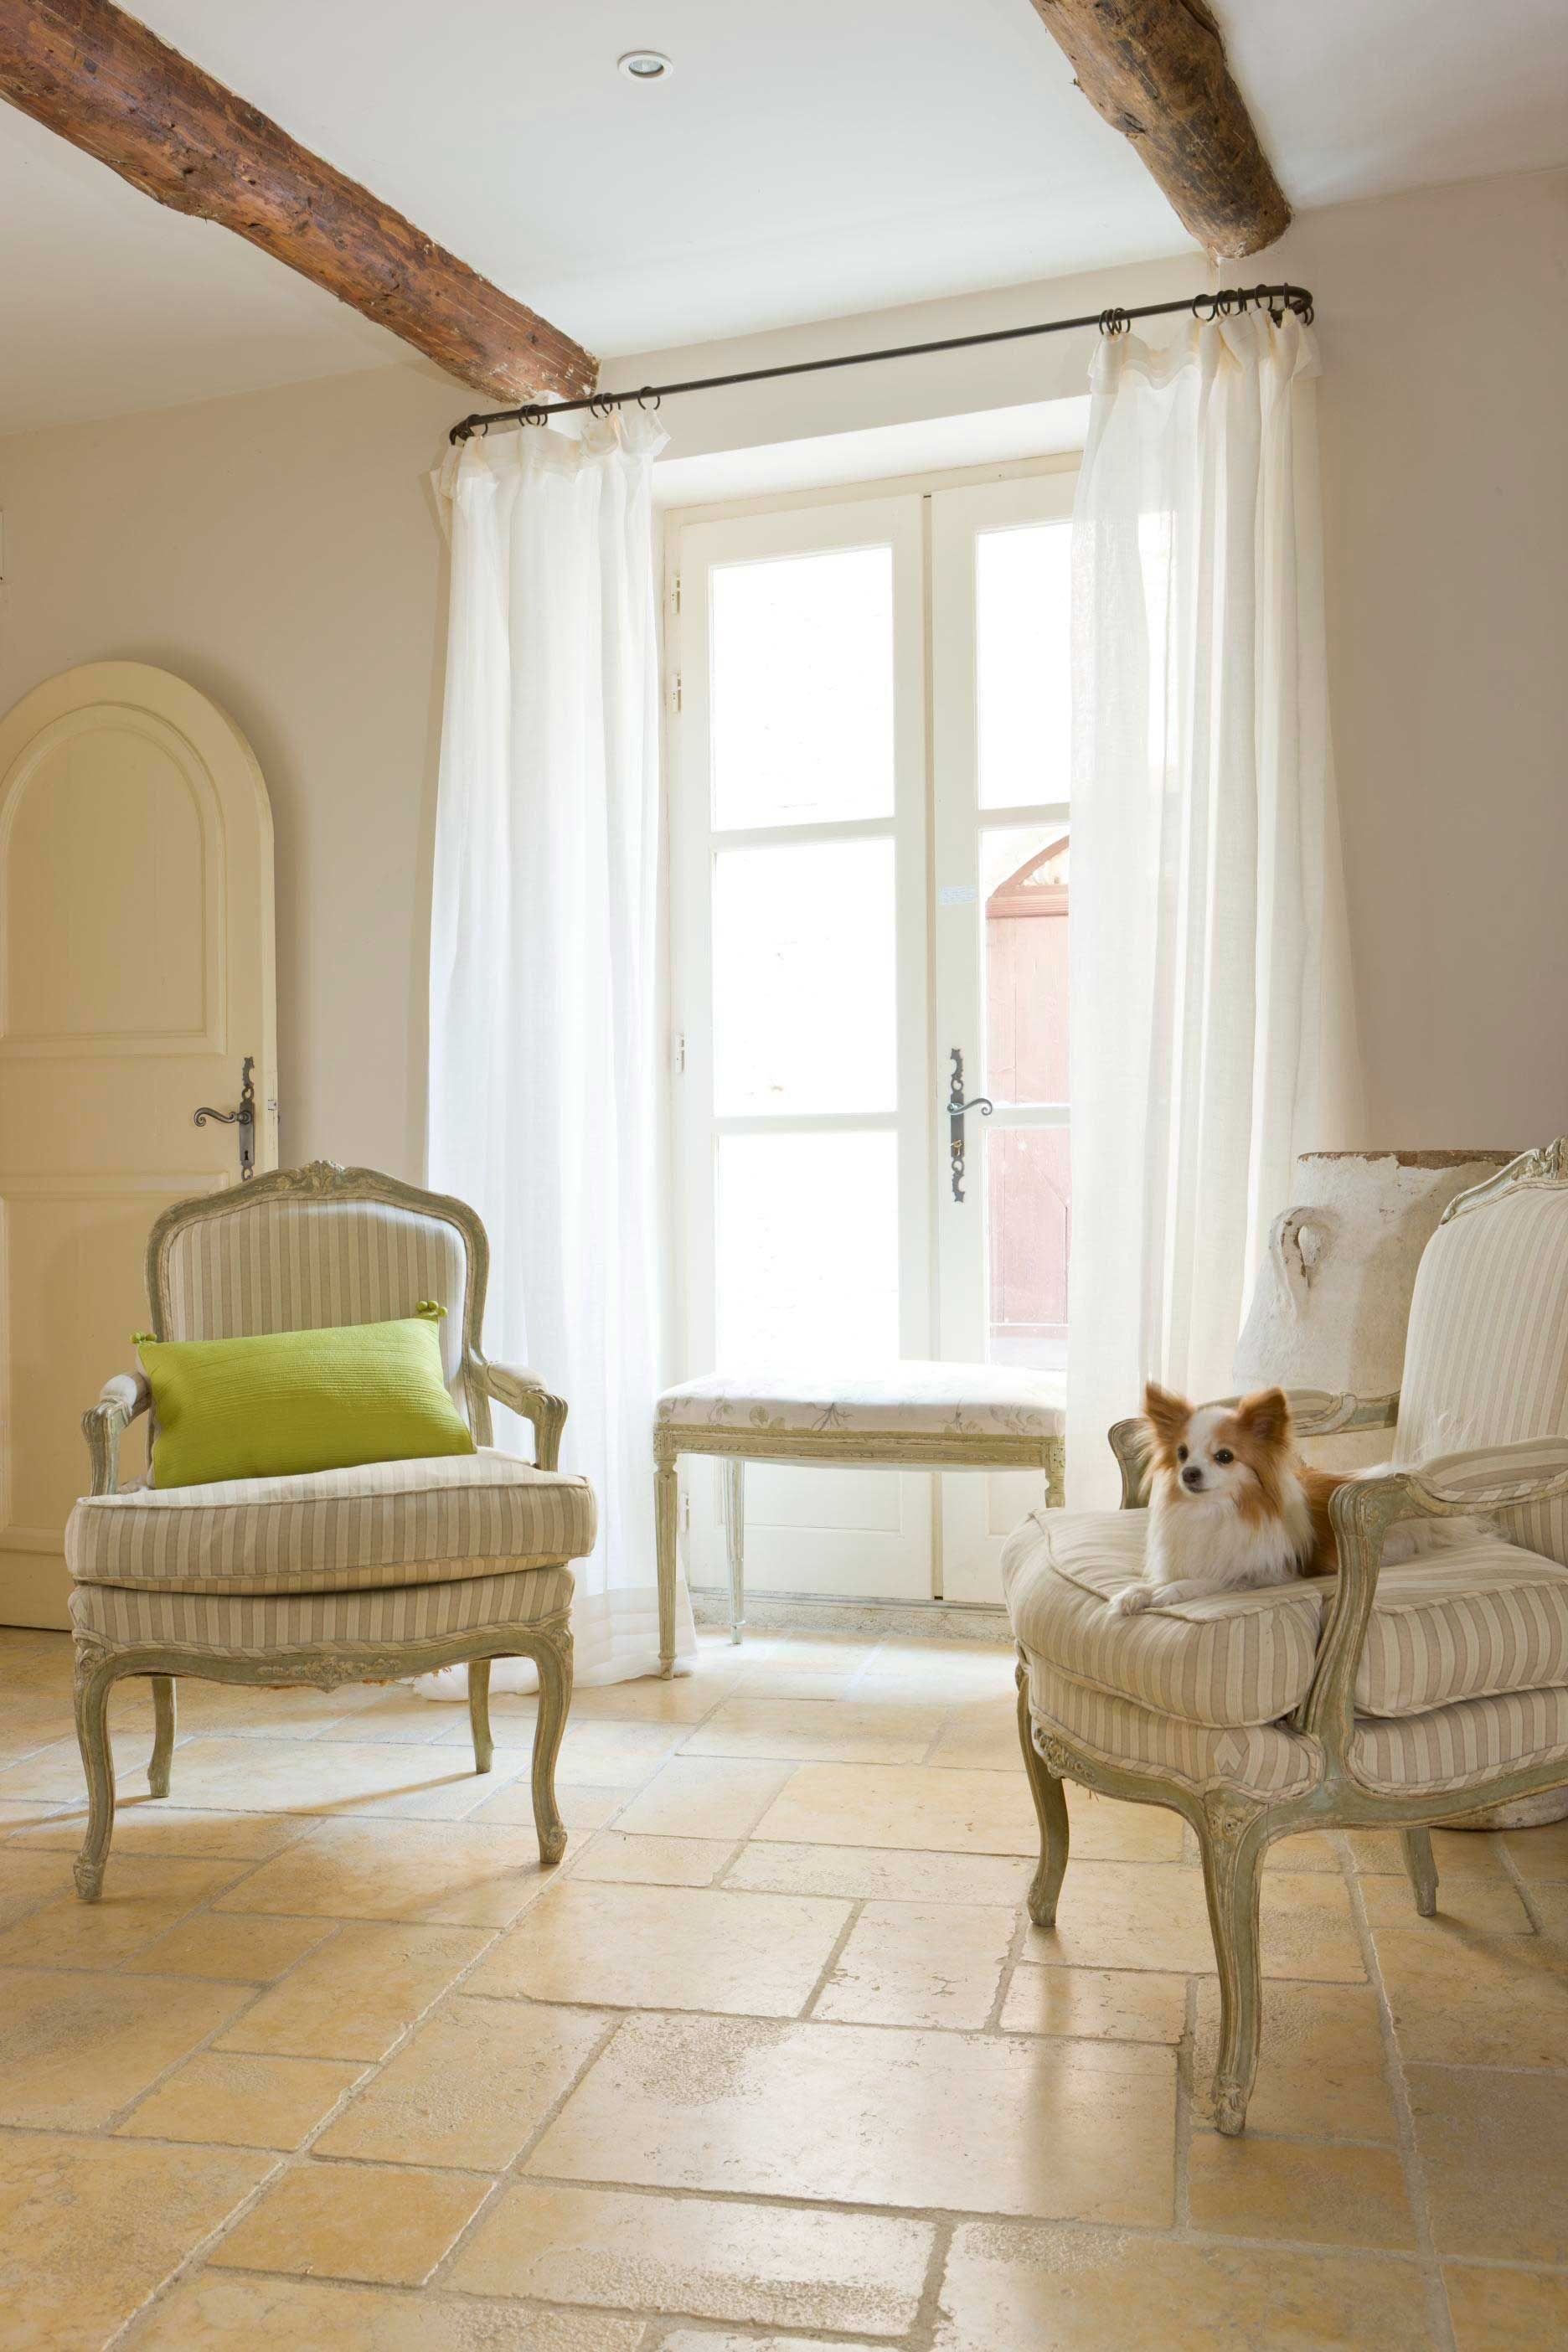 French Country Home that Embraces History | Pinterest | Country ...